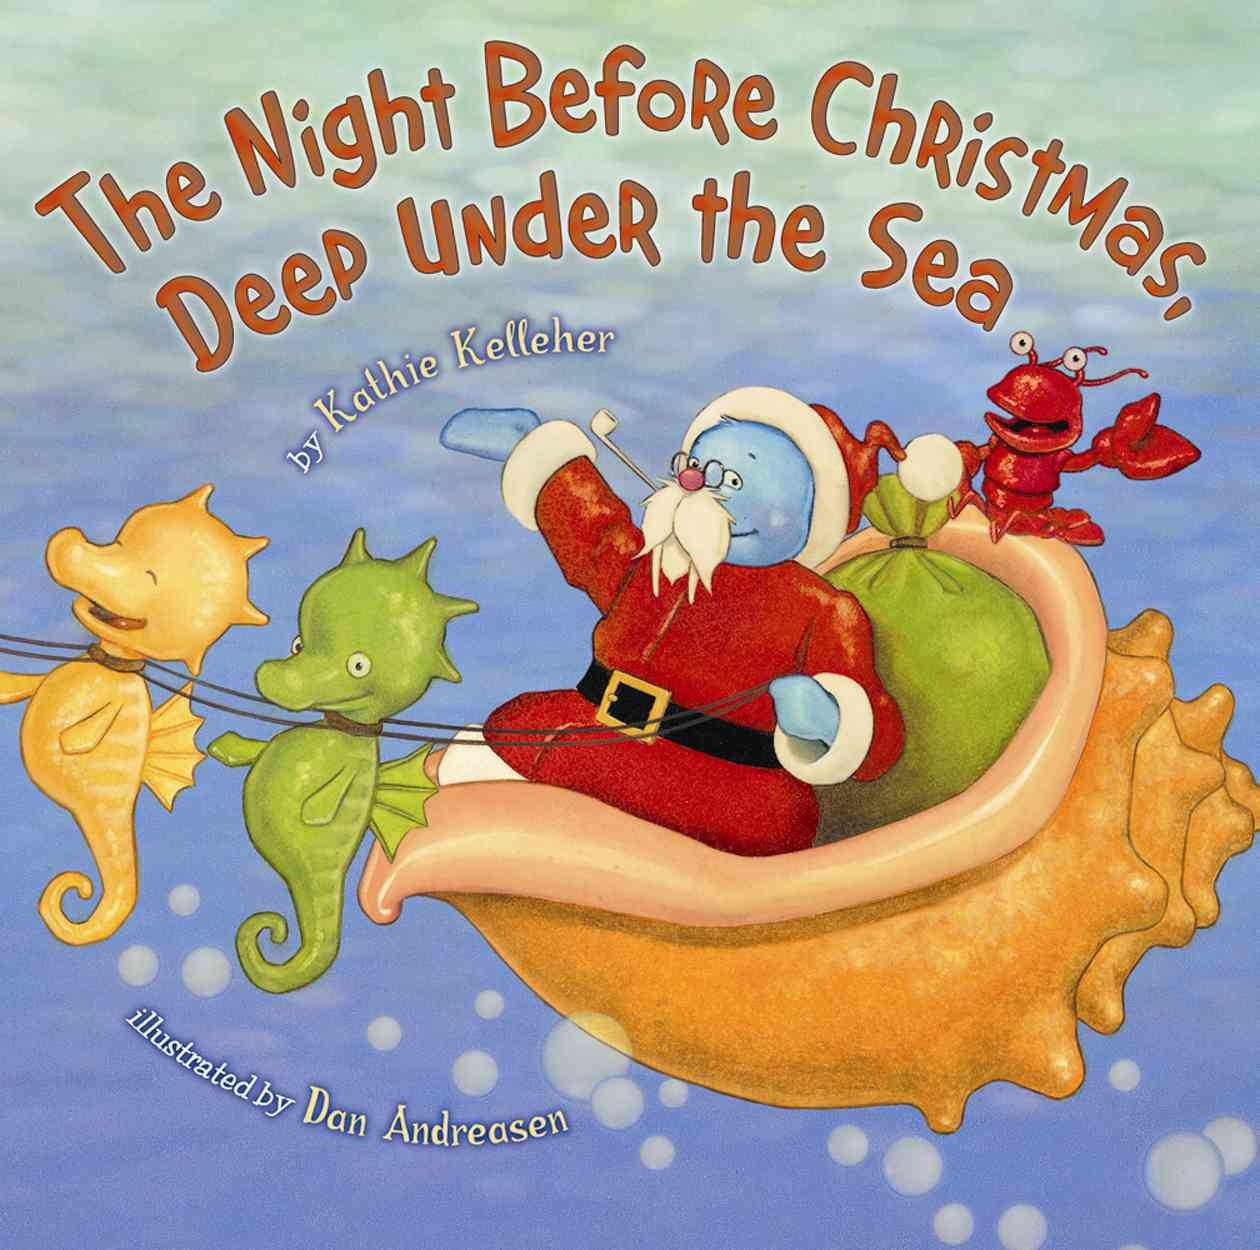 The Night Before Christmas, Deep Under the Sea (Hardcover)